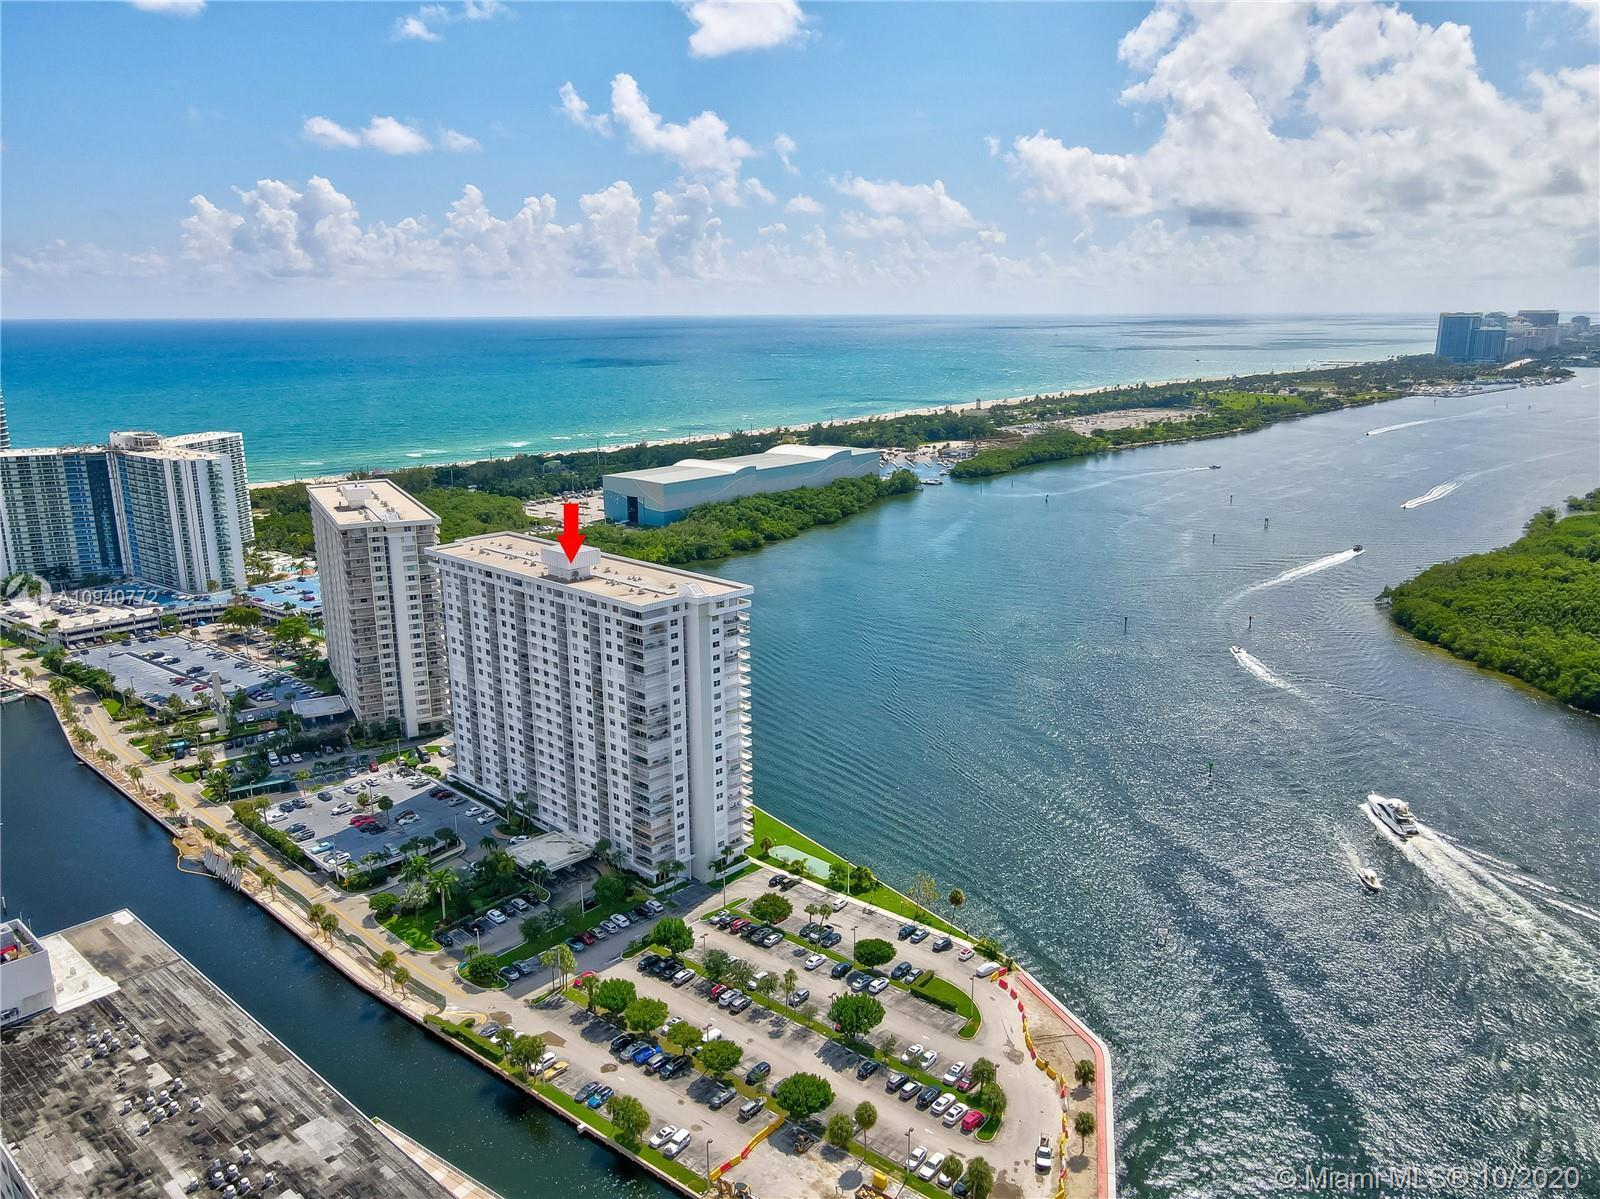 ARLEN HOUSE - BEST LOCATION IN ALL OF SUNNY ISLES. AMAZING INTRACOASTAL AND OCEAN VIEWS FROM 15TH FL